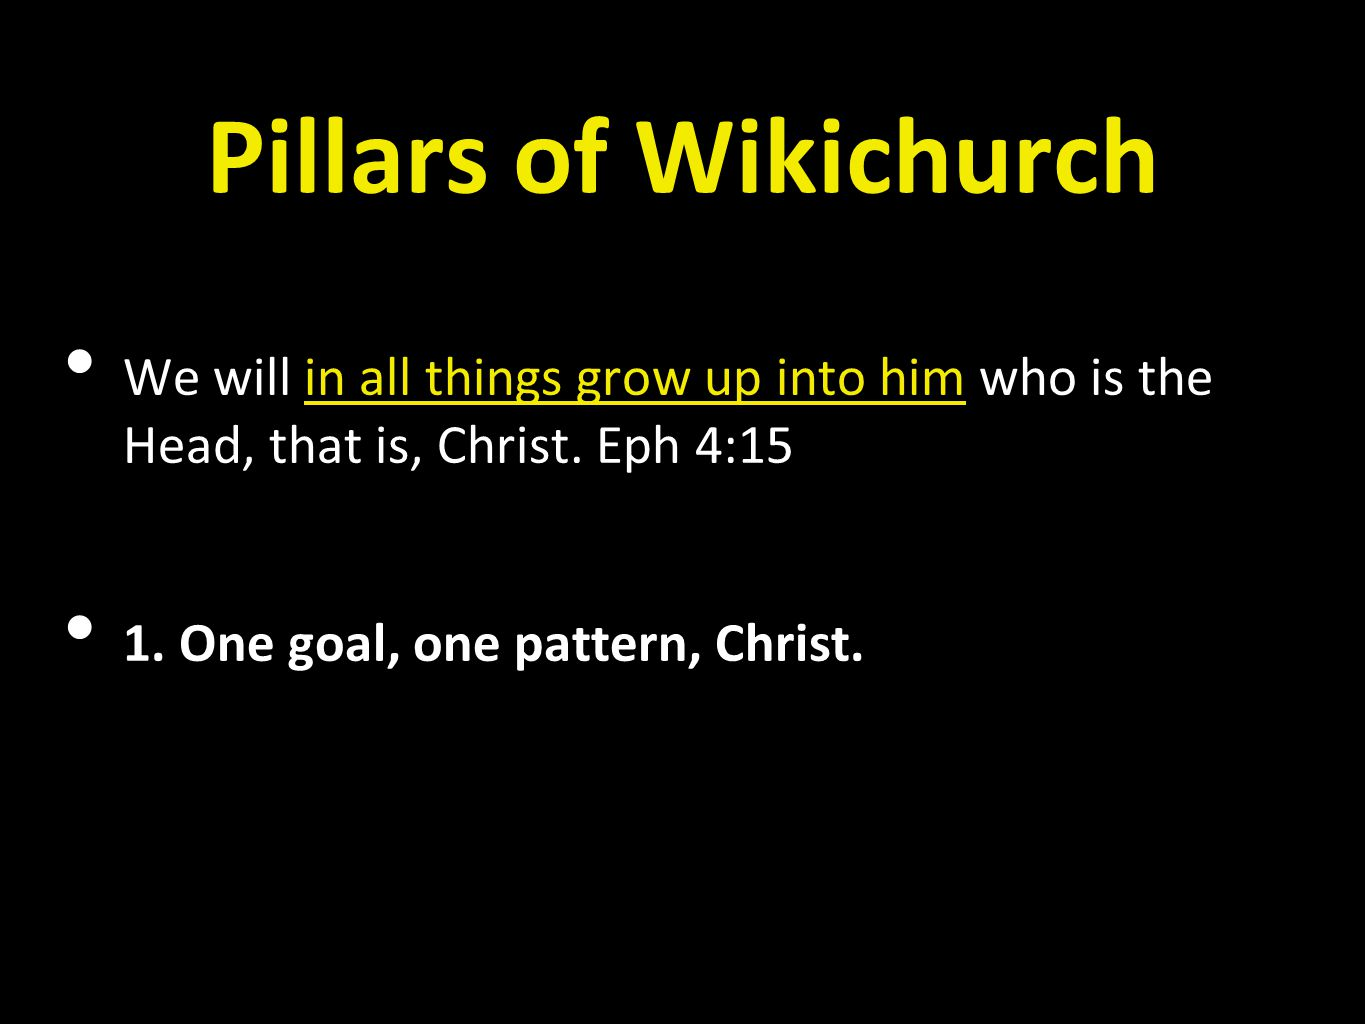 Pillars of Wikichurch • We will in all things grow up into him who is the Head, that is, Christ. Eph 4:15 • 1. One goal, one pattern, Christ.